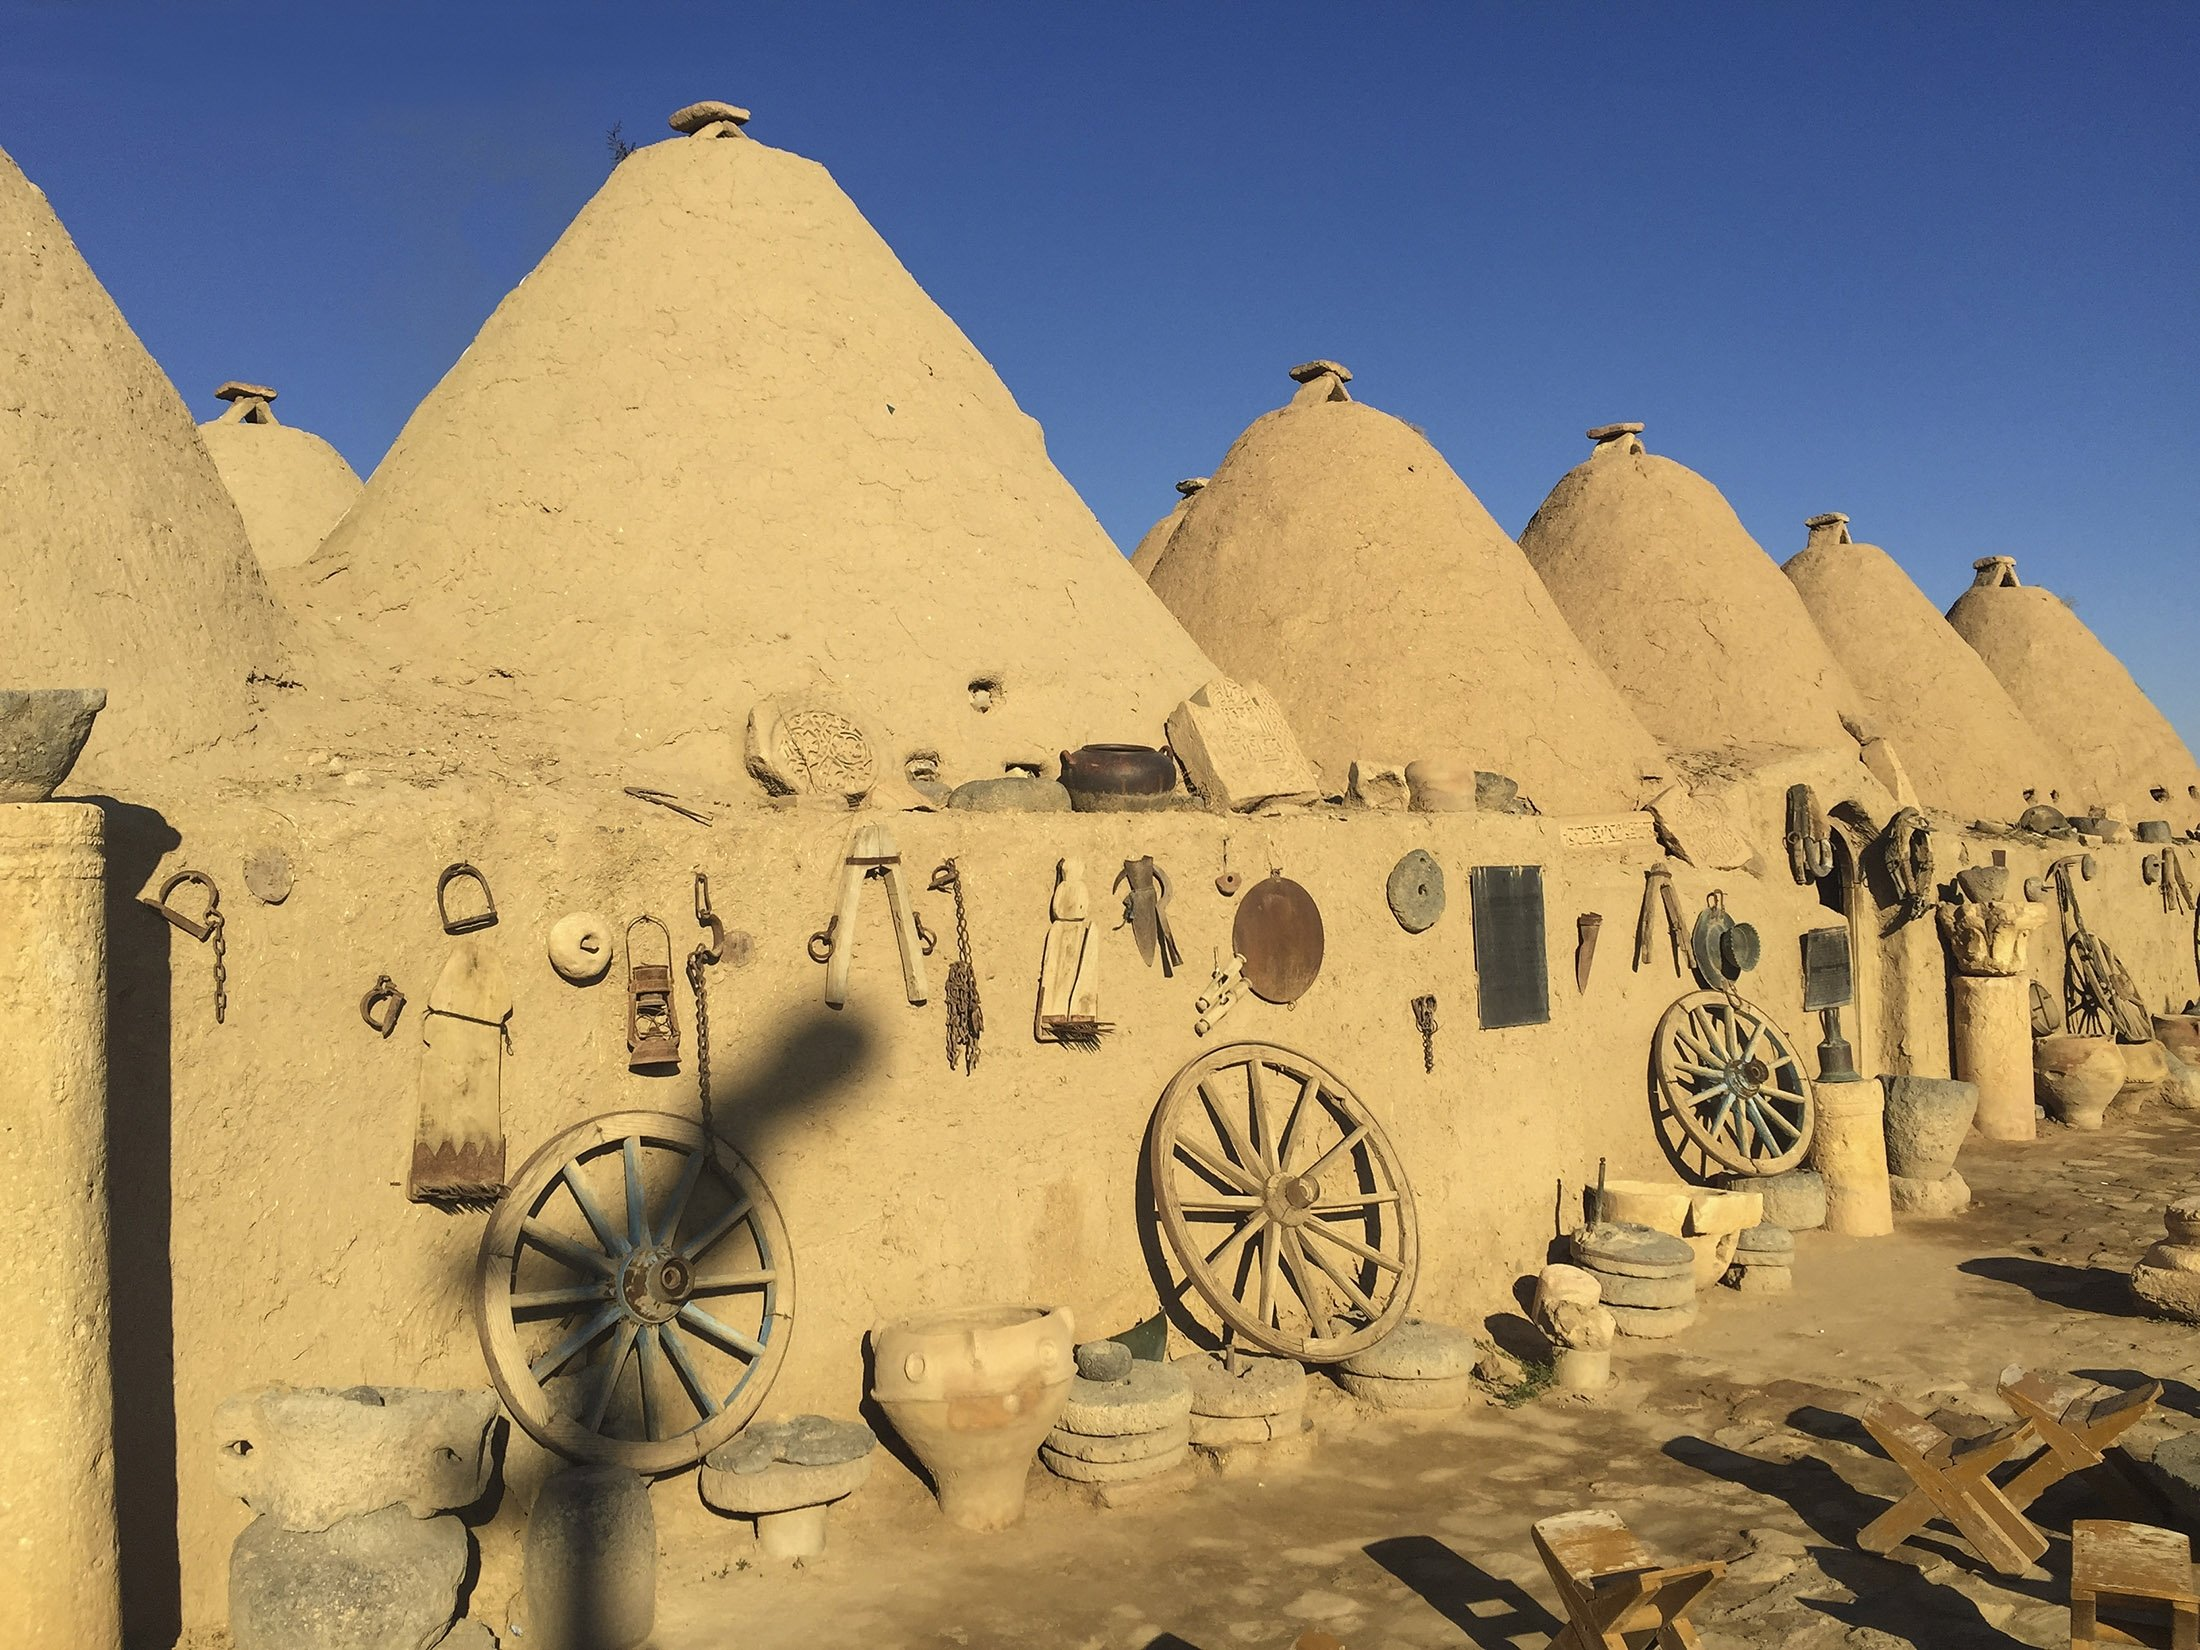 The 250-year-old conical dome houses of Şanlıurfa, Turkey. (Shutterstock Photo)